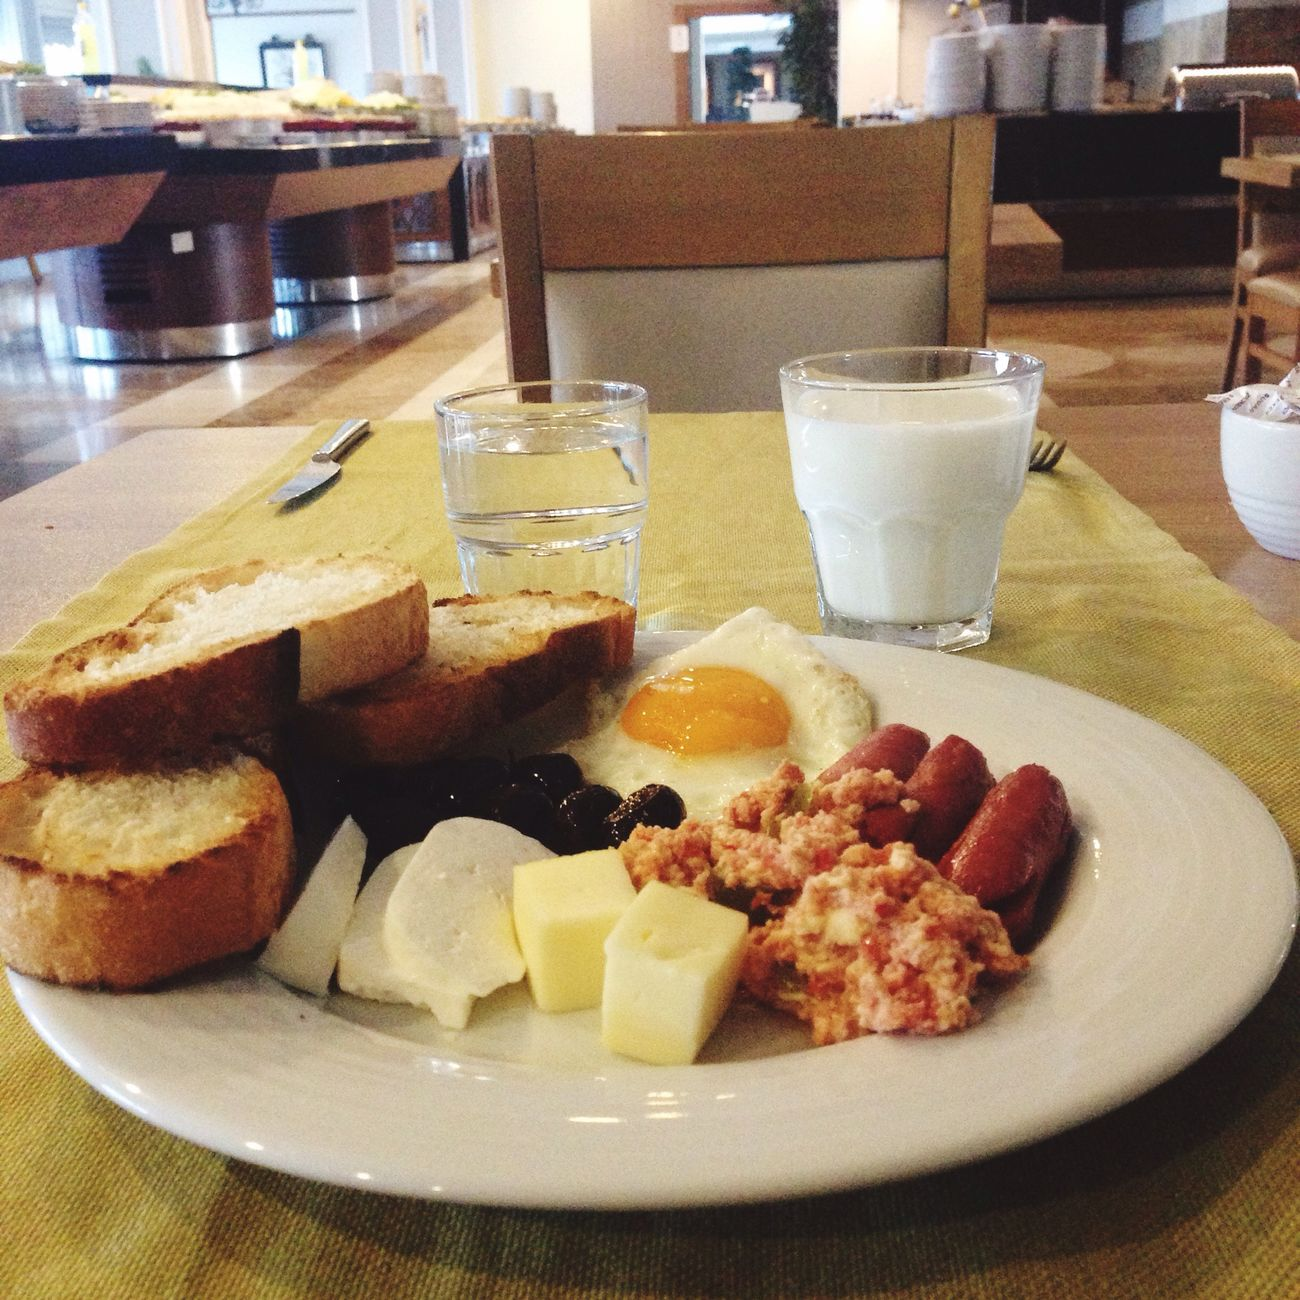 Breakfast Food And Drink Ready-to-eat Plate Table Food Indoors  No People Drink English Breakfast Toasted Bread Freshness Comfort Food Close-up Fried Egg Day Have A Good Day